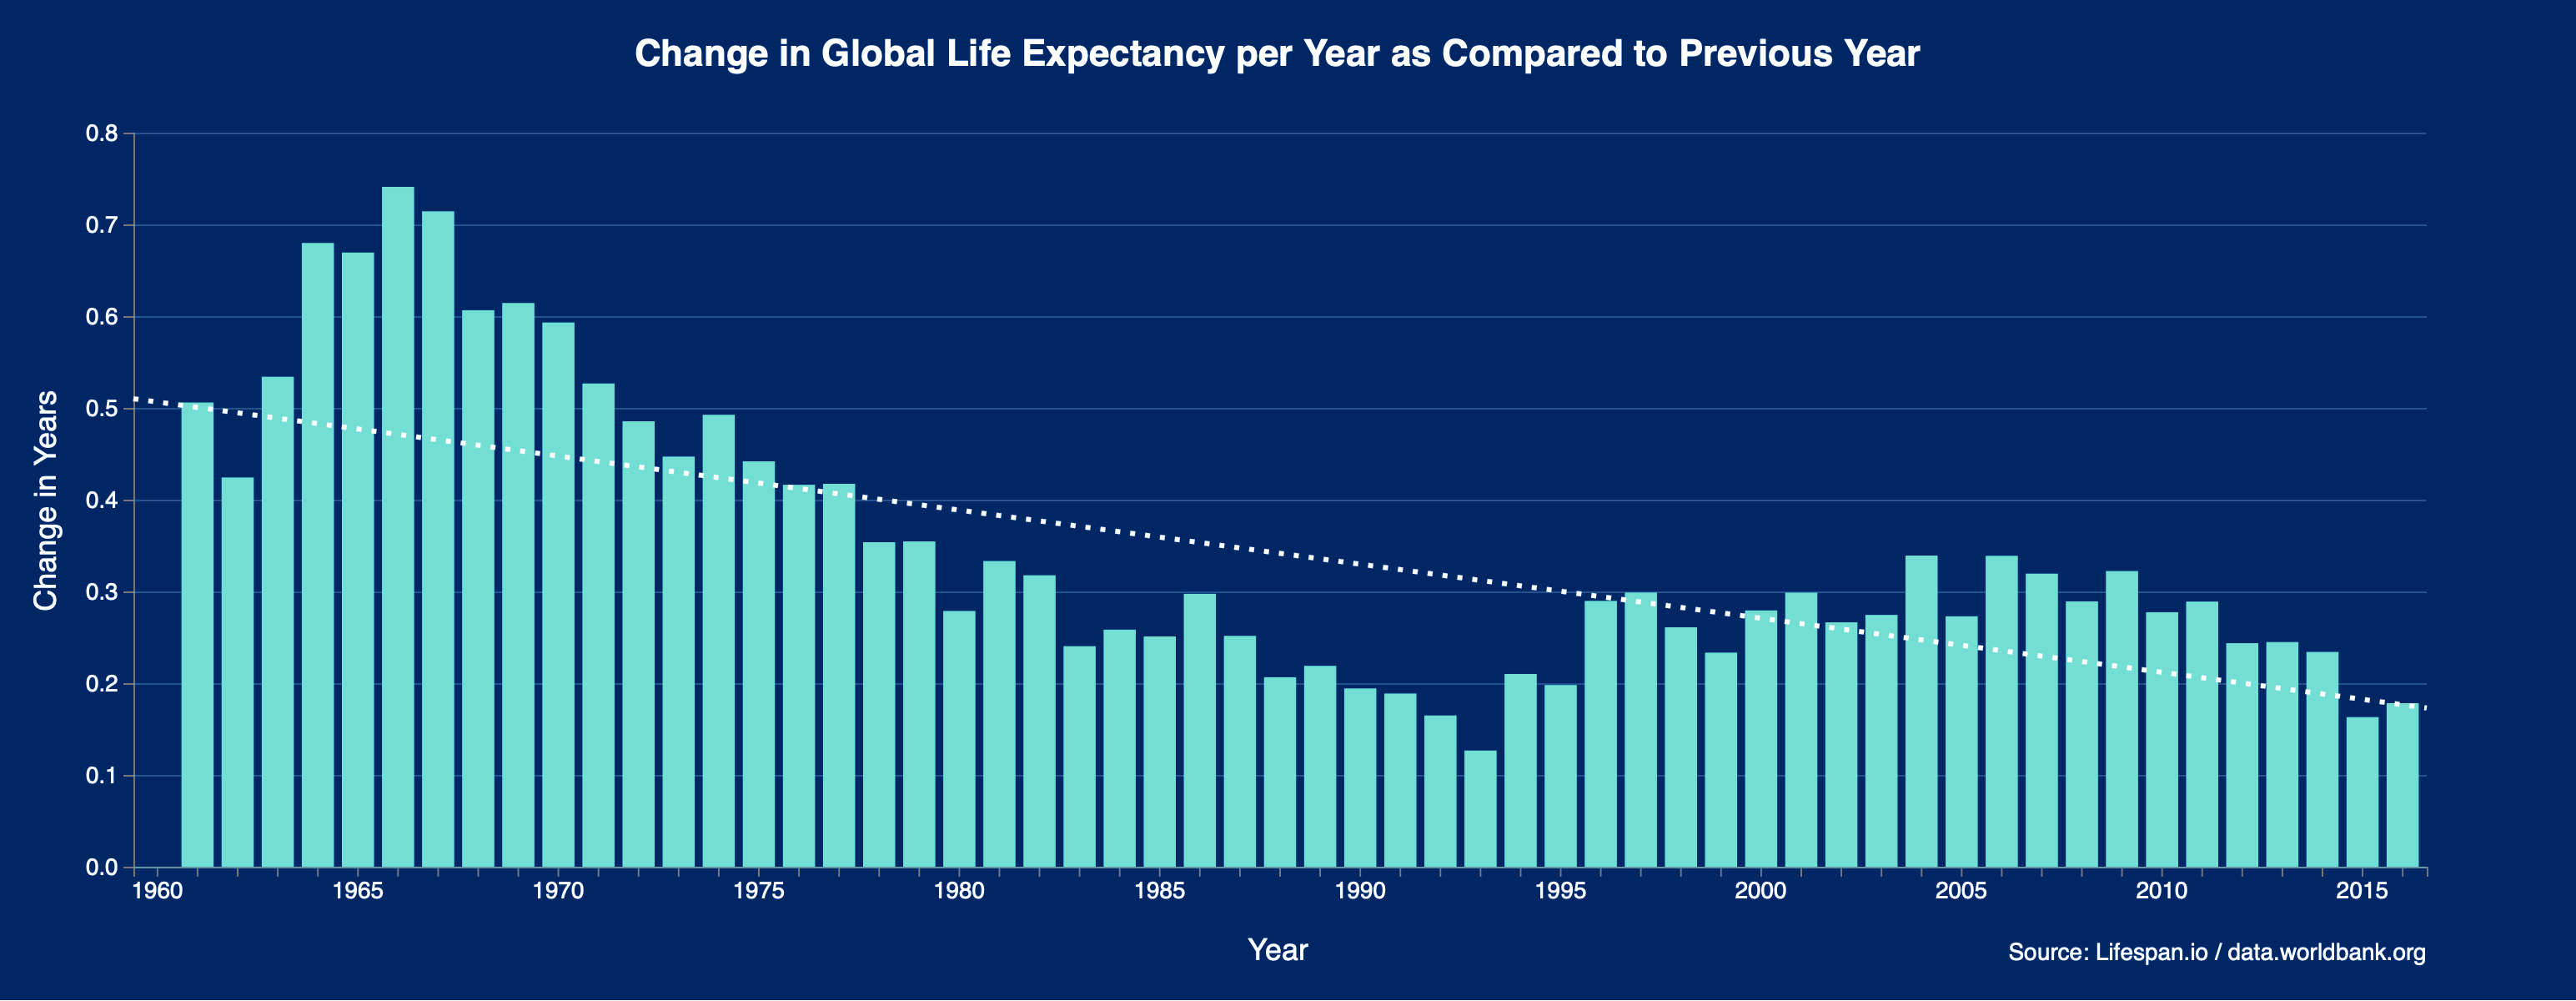 Change in global life expectancy over time